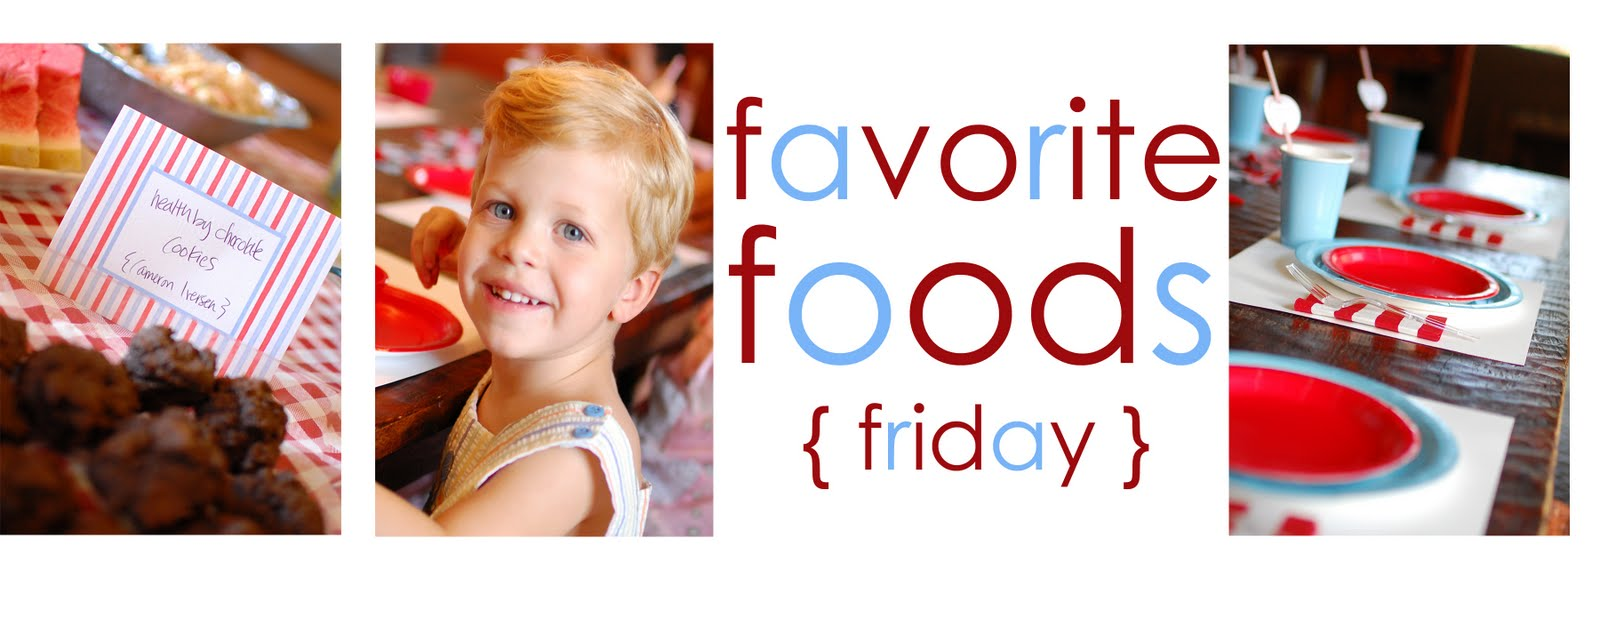 Favorite Foods Friday